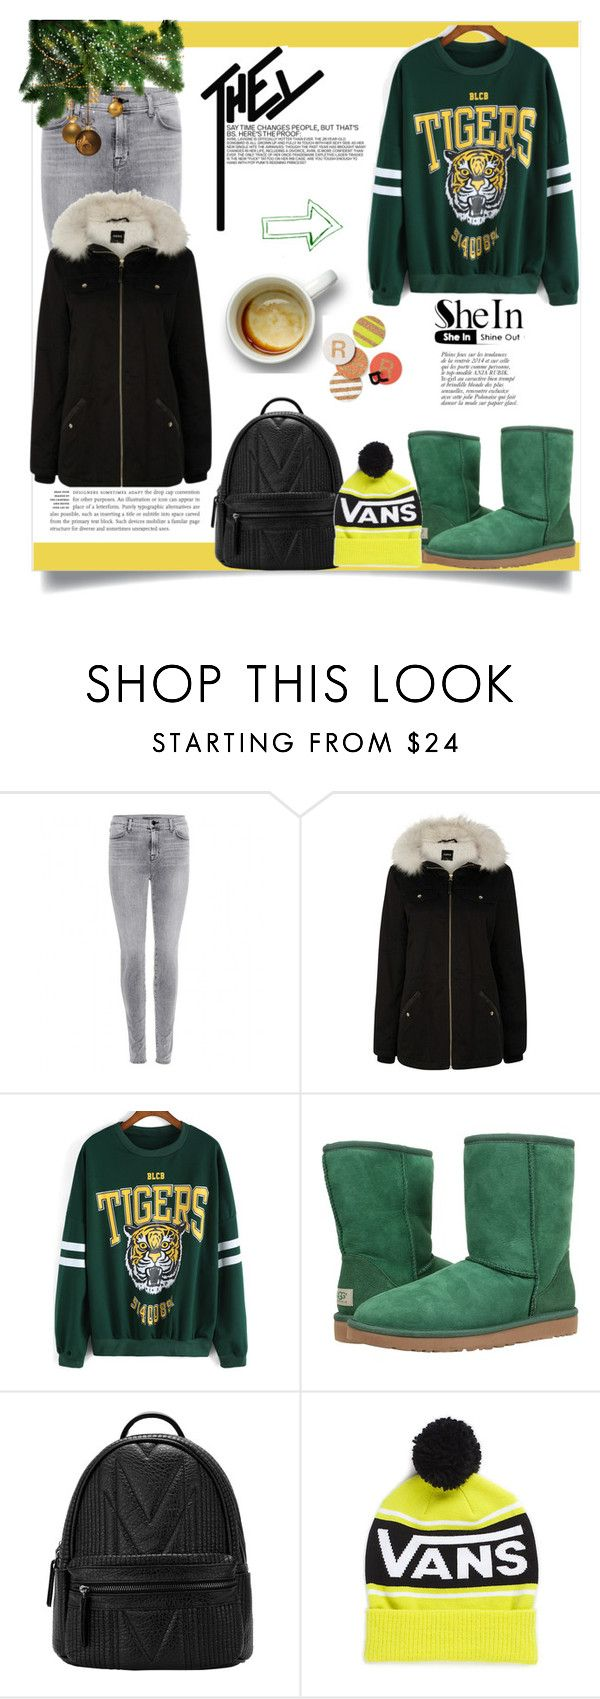 """Sweatshirt(SheIn)"" by pamra1 ❤ liked on Polyvore featuring J Brand, Oasis, UGG Australia, Vans, Hostess, Anja and shein"